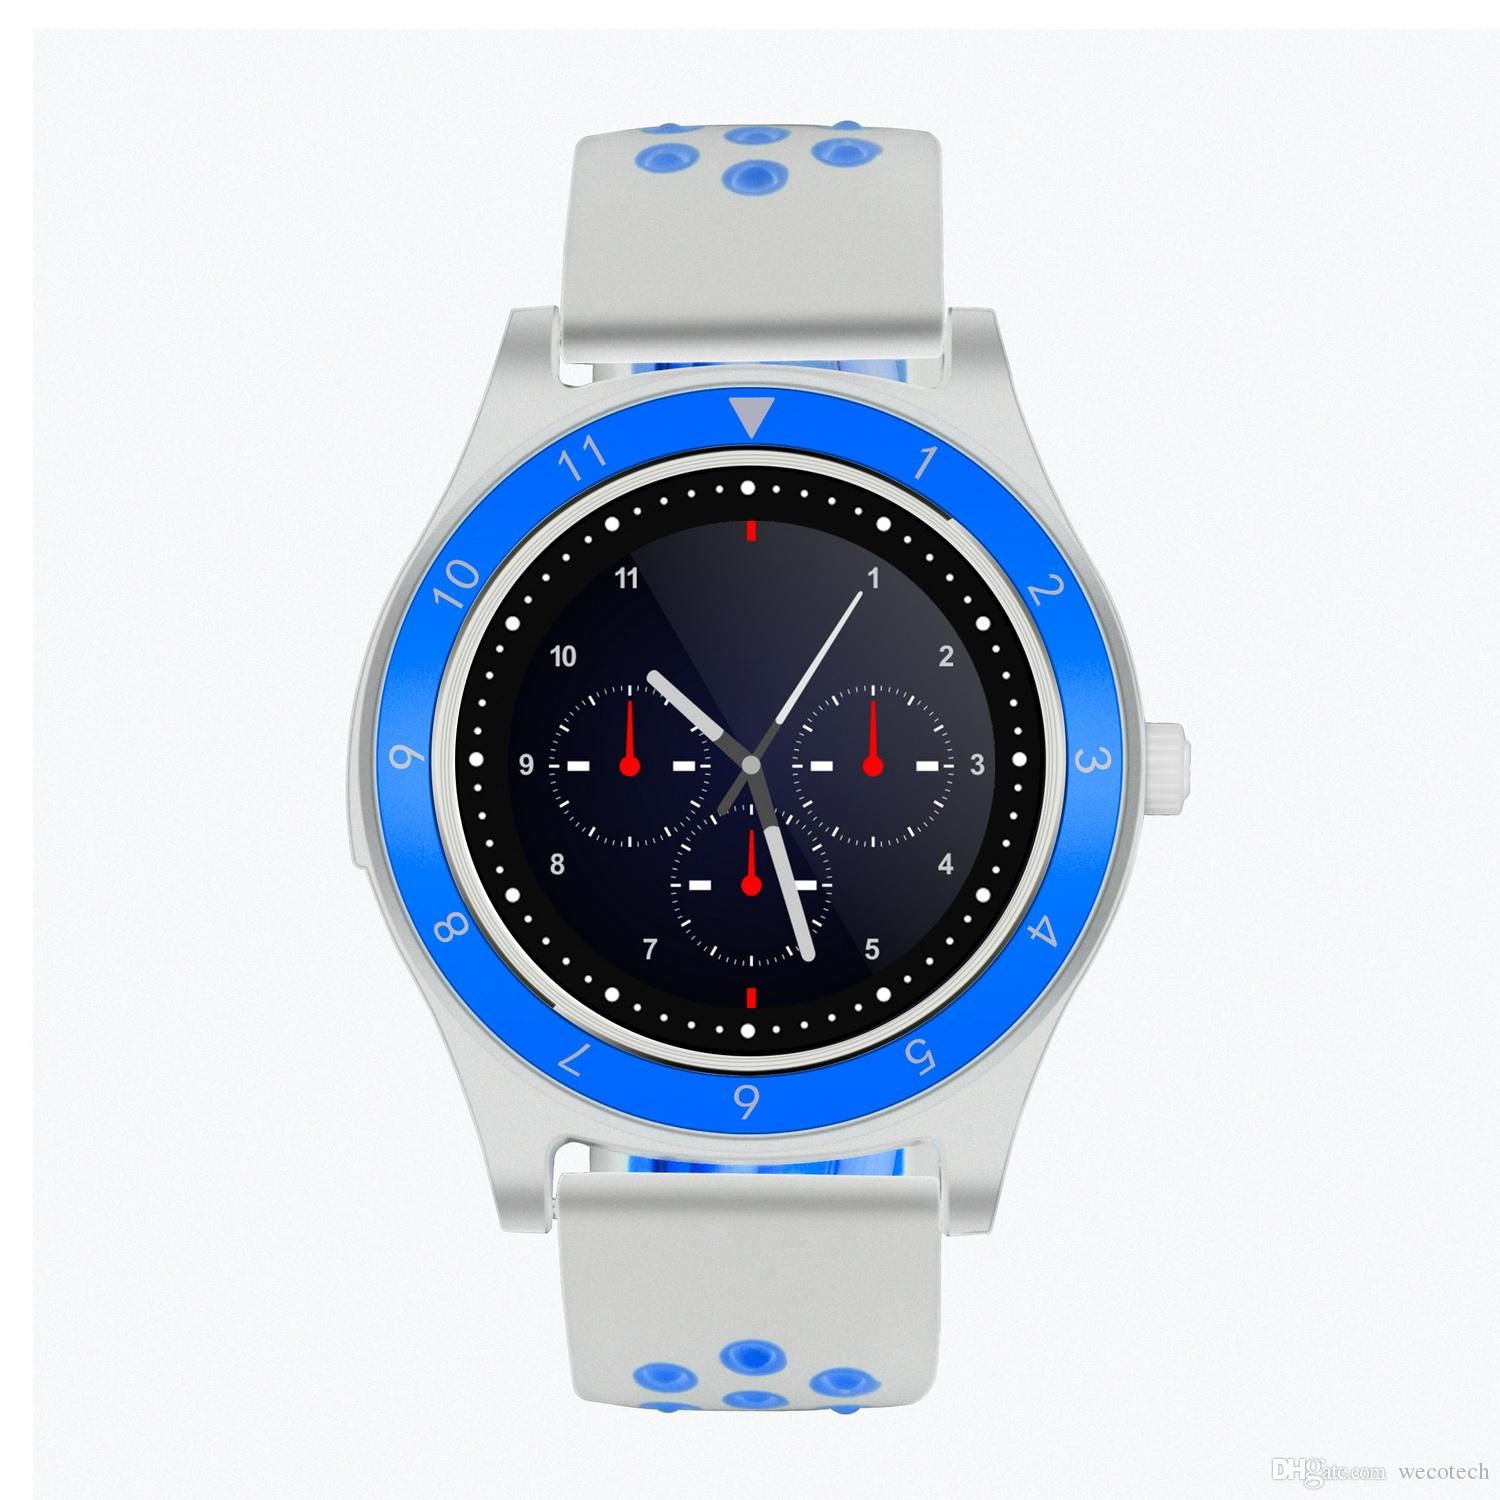 Bluetooth Smart Watch SIM Card Phone Call SMS Built-in Camera Pedometer Sleep Monitor Sedentary Reminder Message Push MP3 Music Player